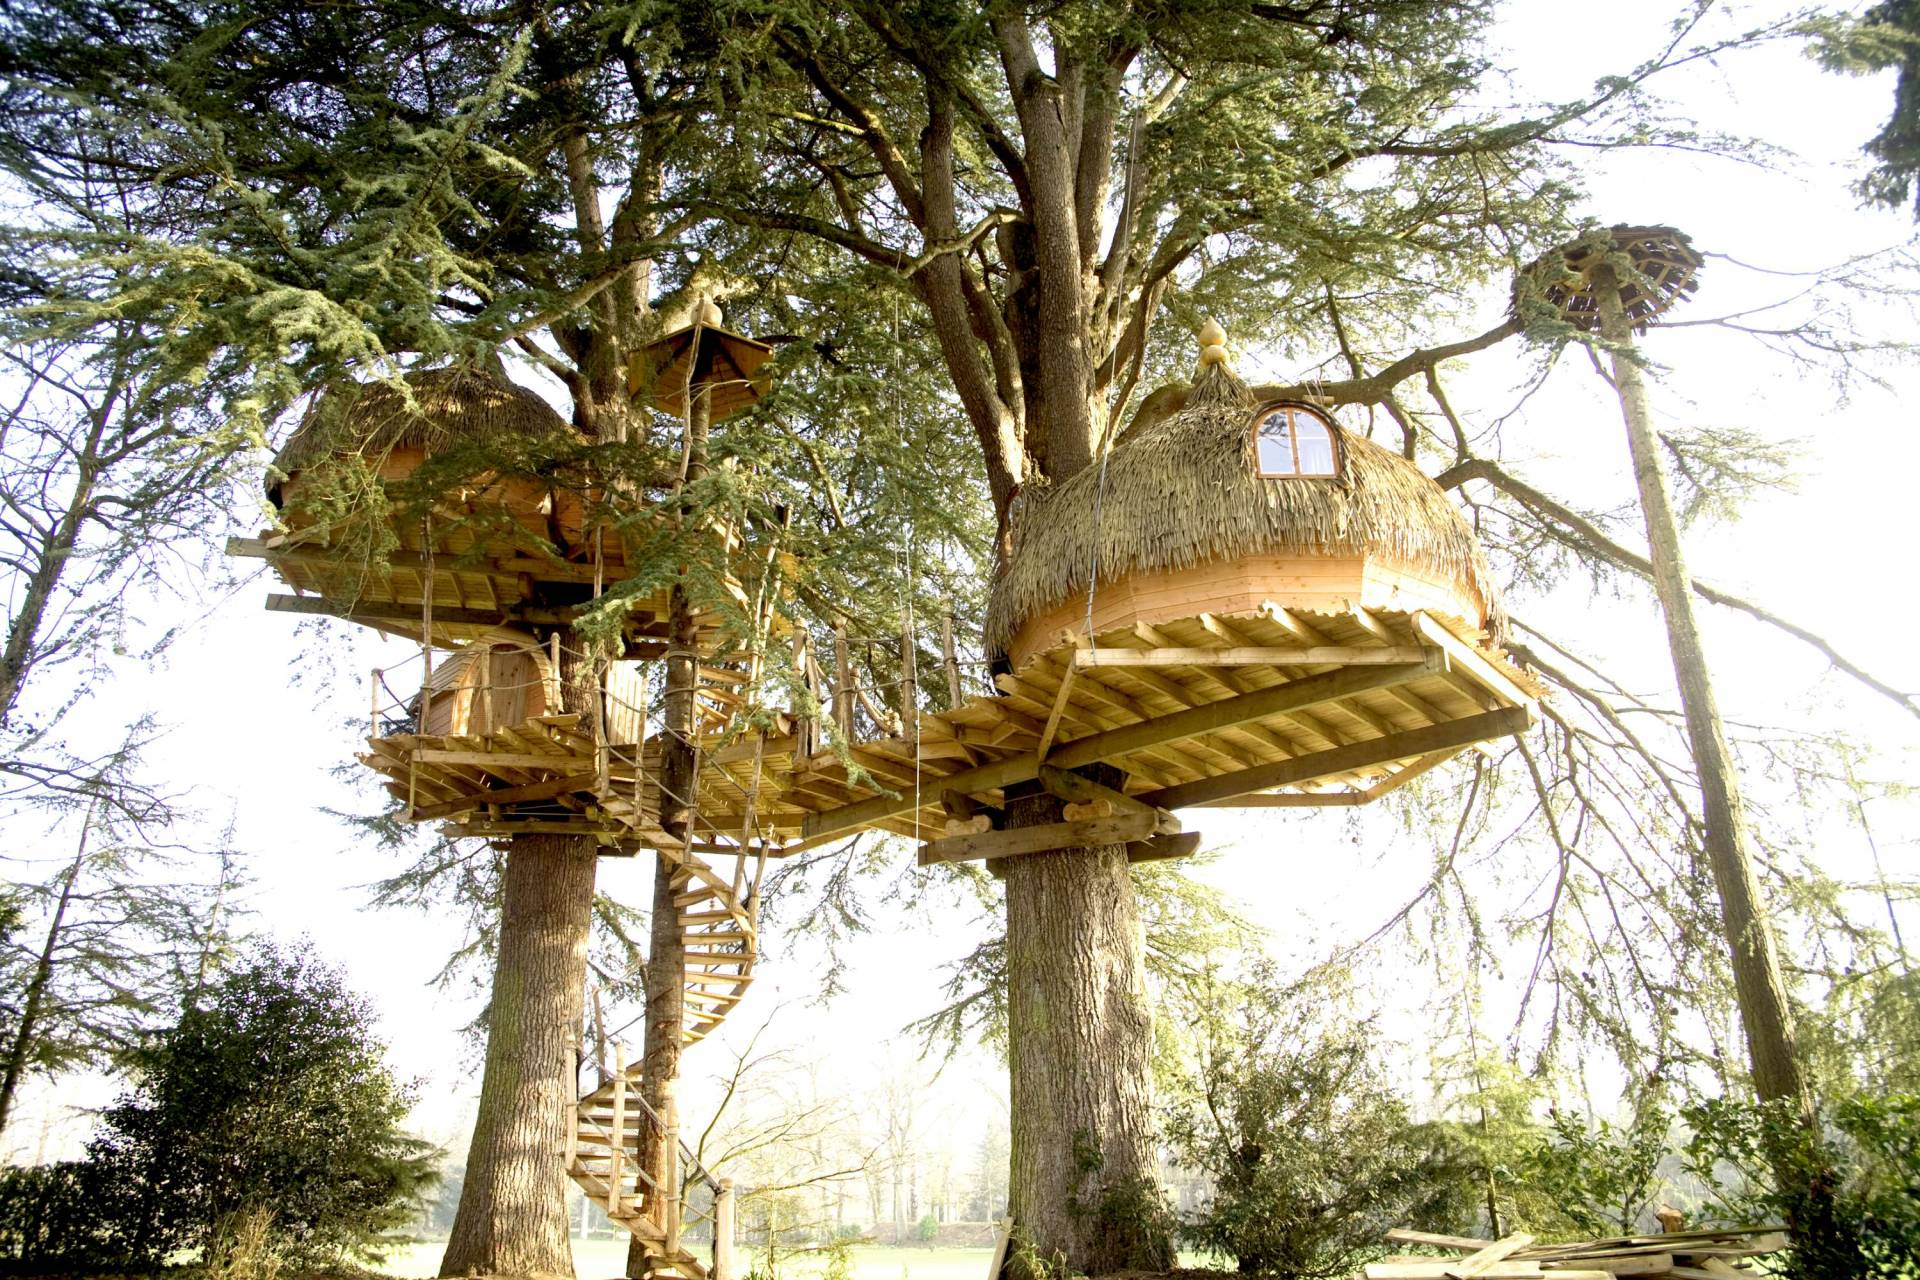 Stay in a treehouse in Domaine Des Ormes